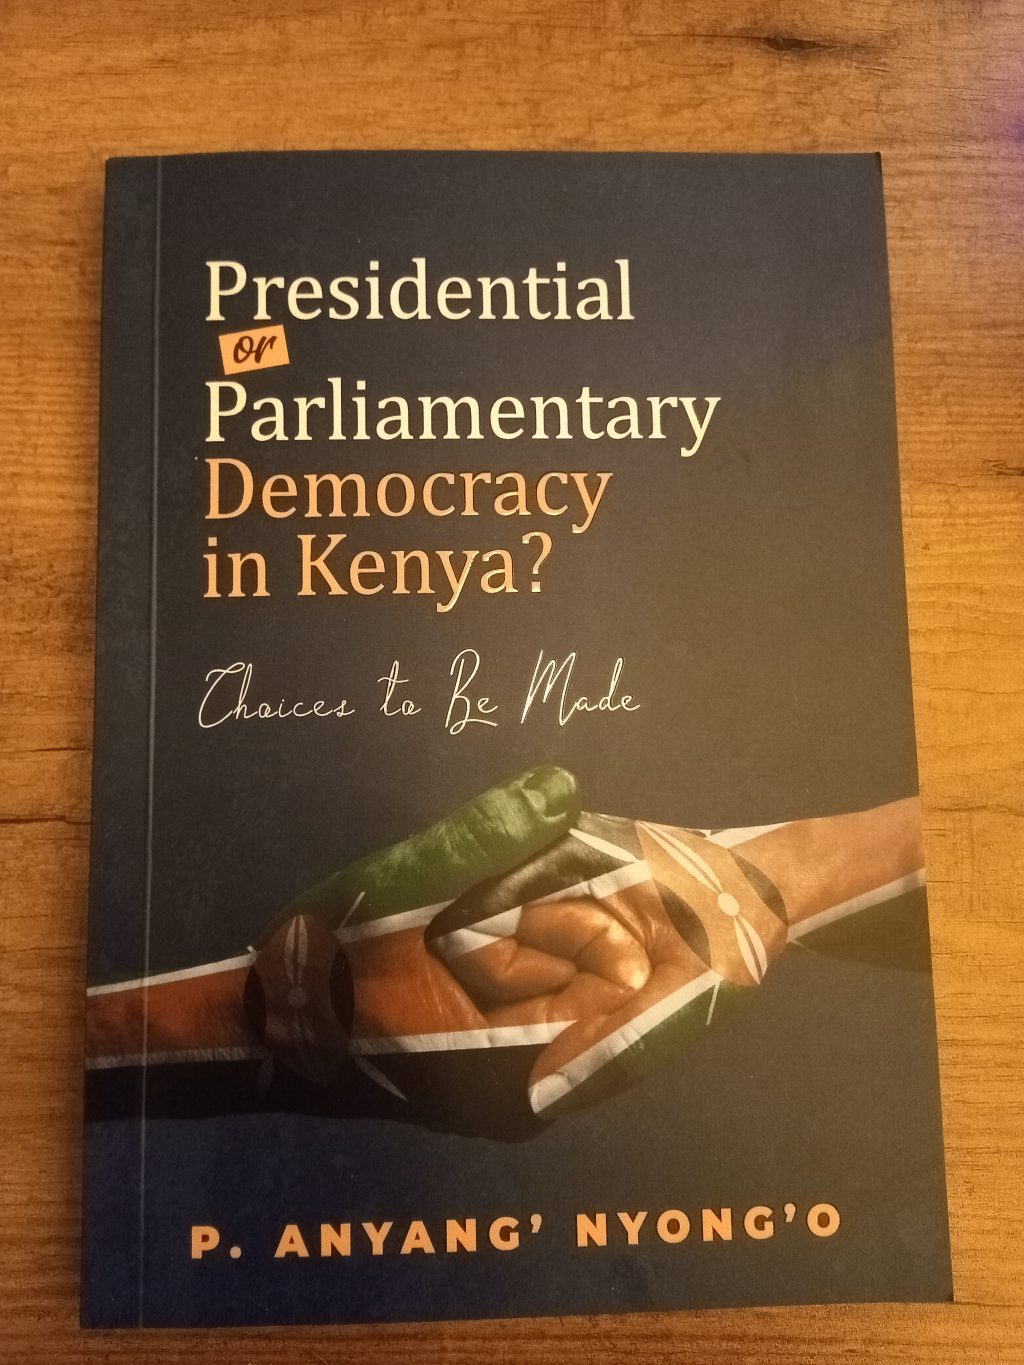 Prof. Anyang Nyong'o's 'Choices to Be Made' Urges the Adoption of Parliamentary System in Kenya